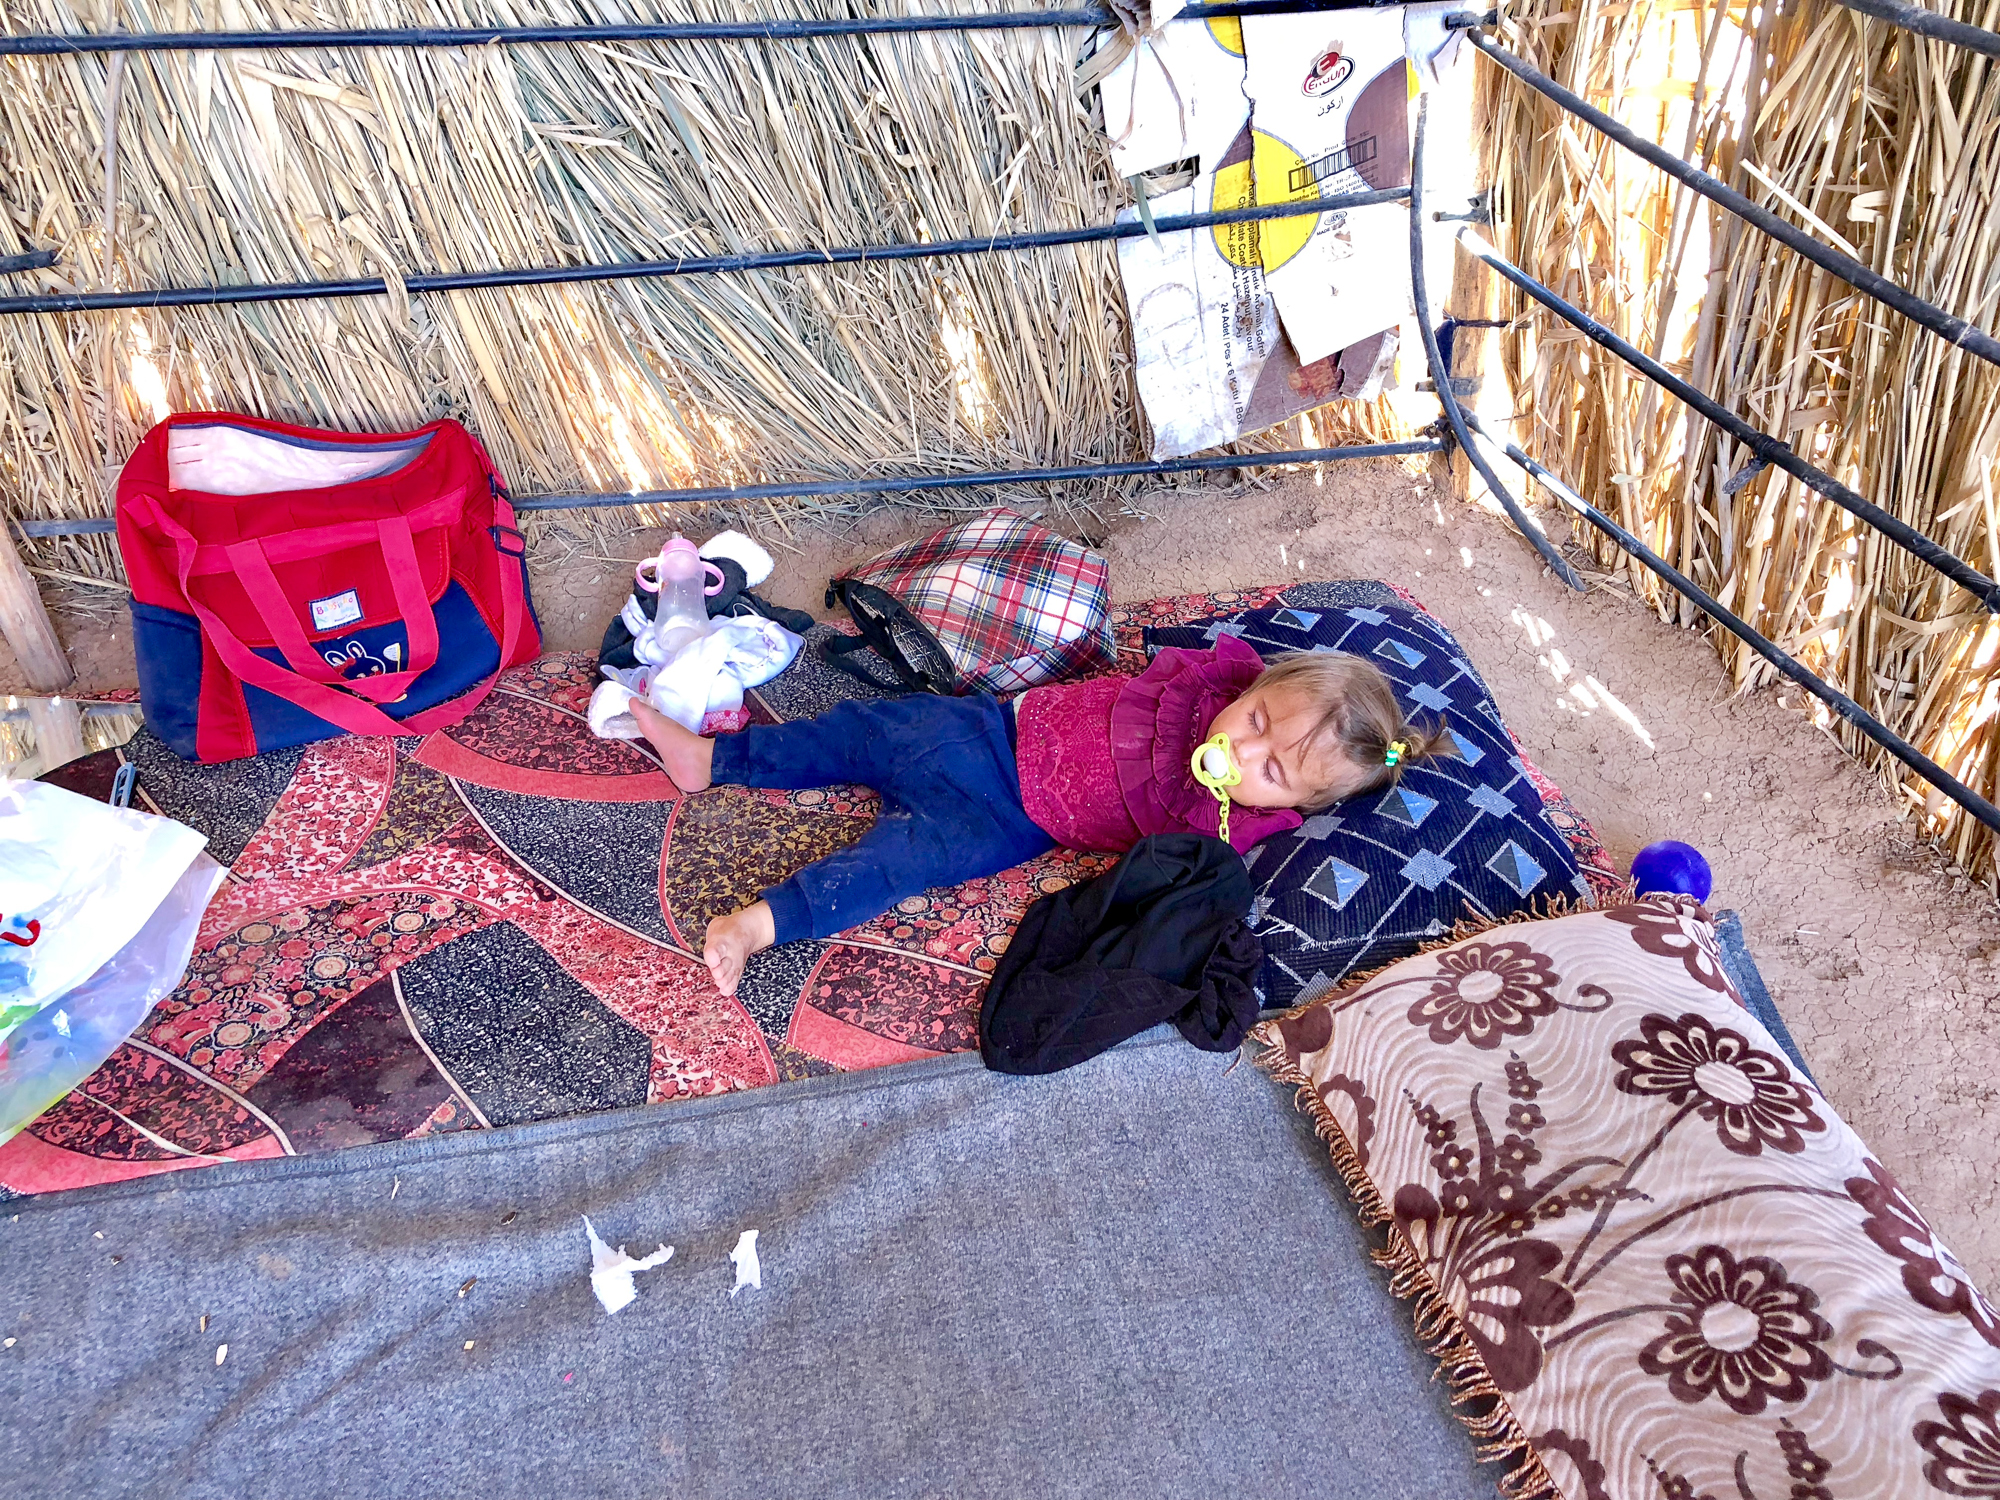 A young yazidi girl is sleeping in a house made of straw